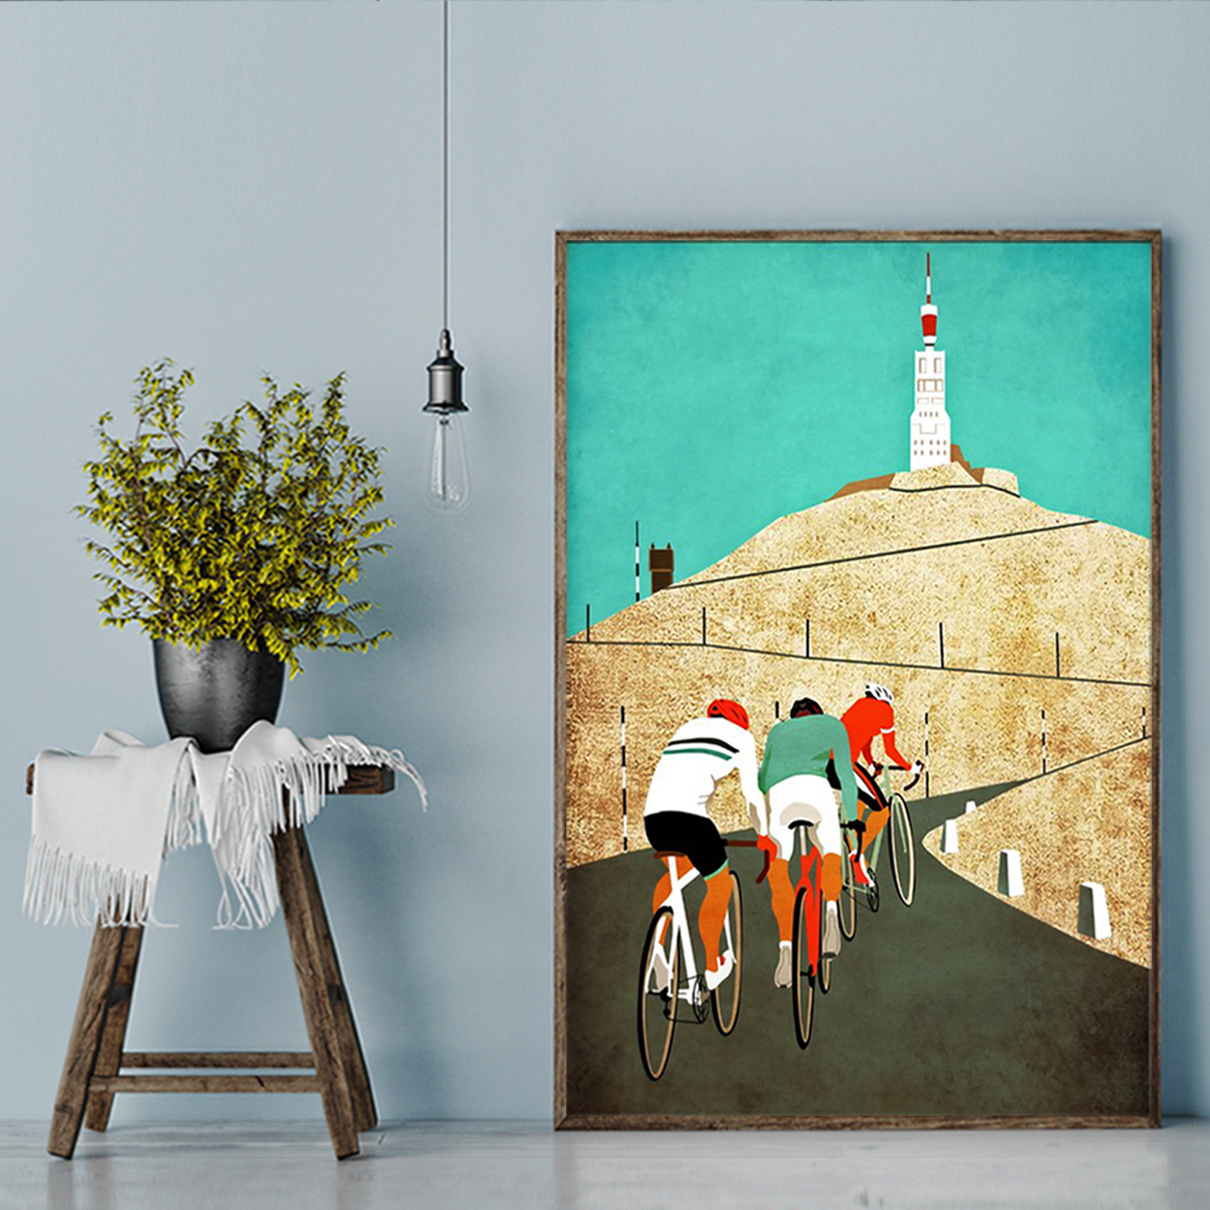 Cycling mount ventoux poster A3